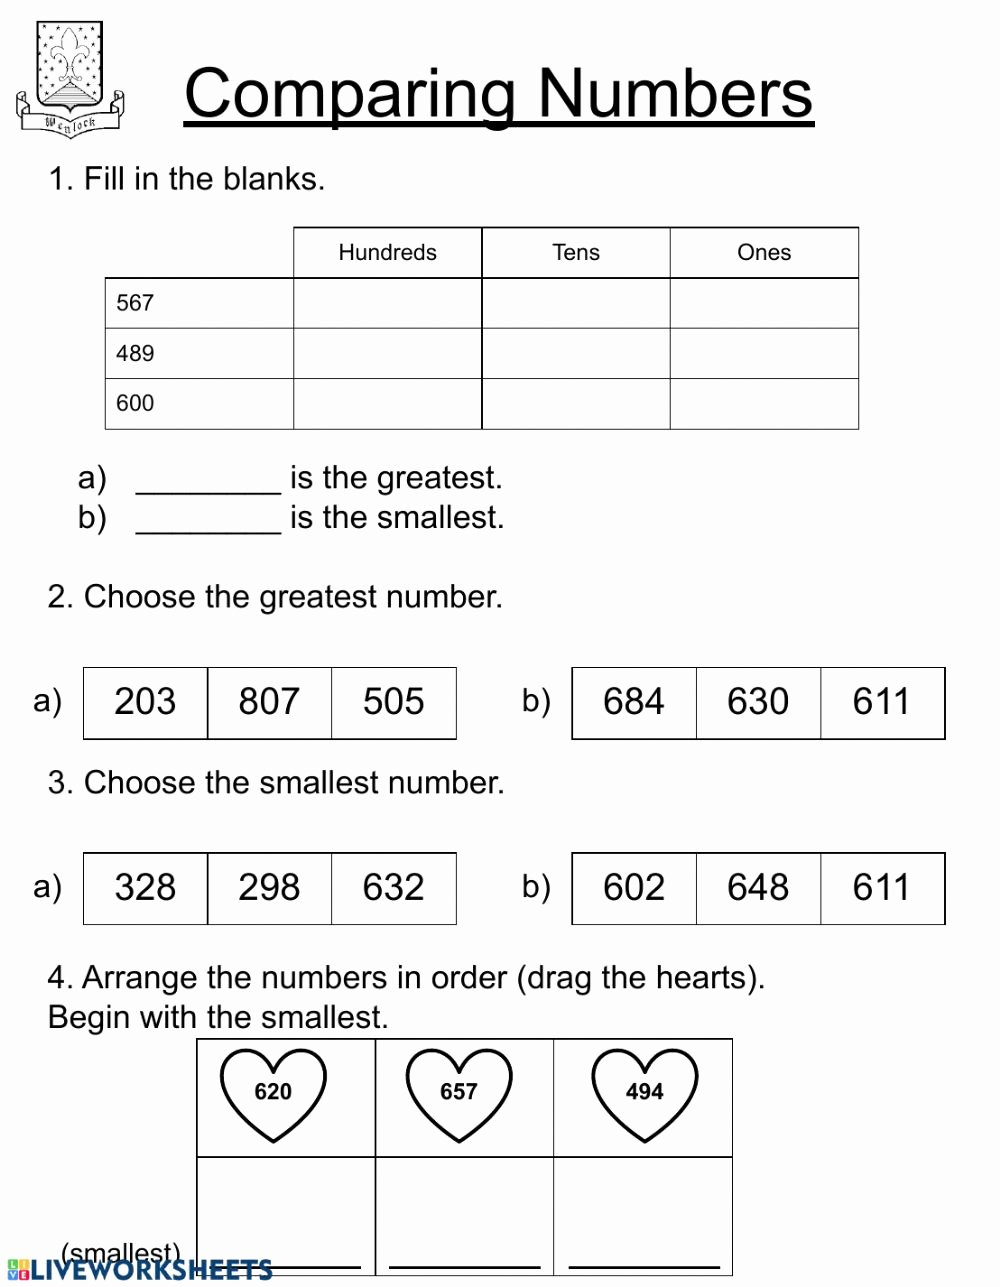 Comparing Numbers Worksheets 2nd Grade top Paring Numbers Second Grade Interactive Worksheet